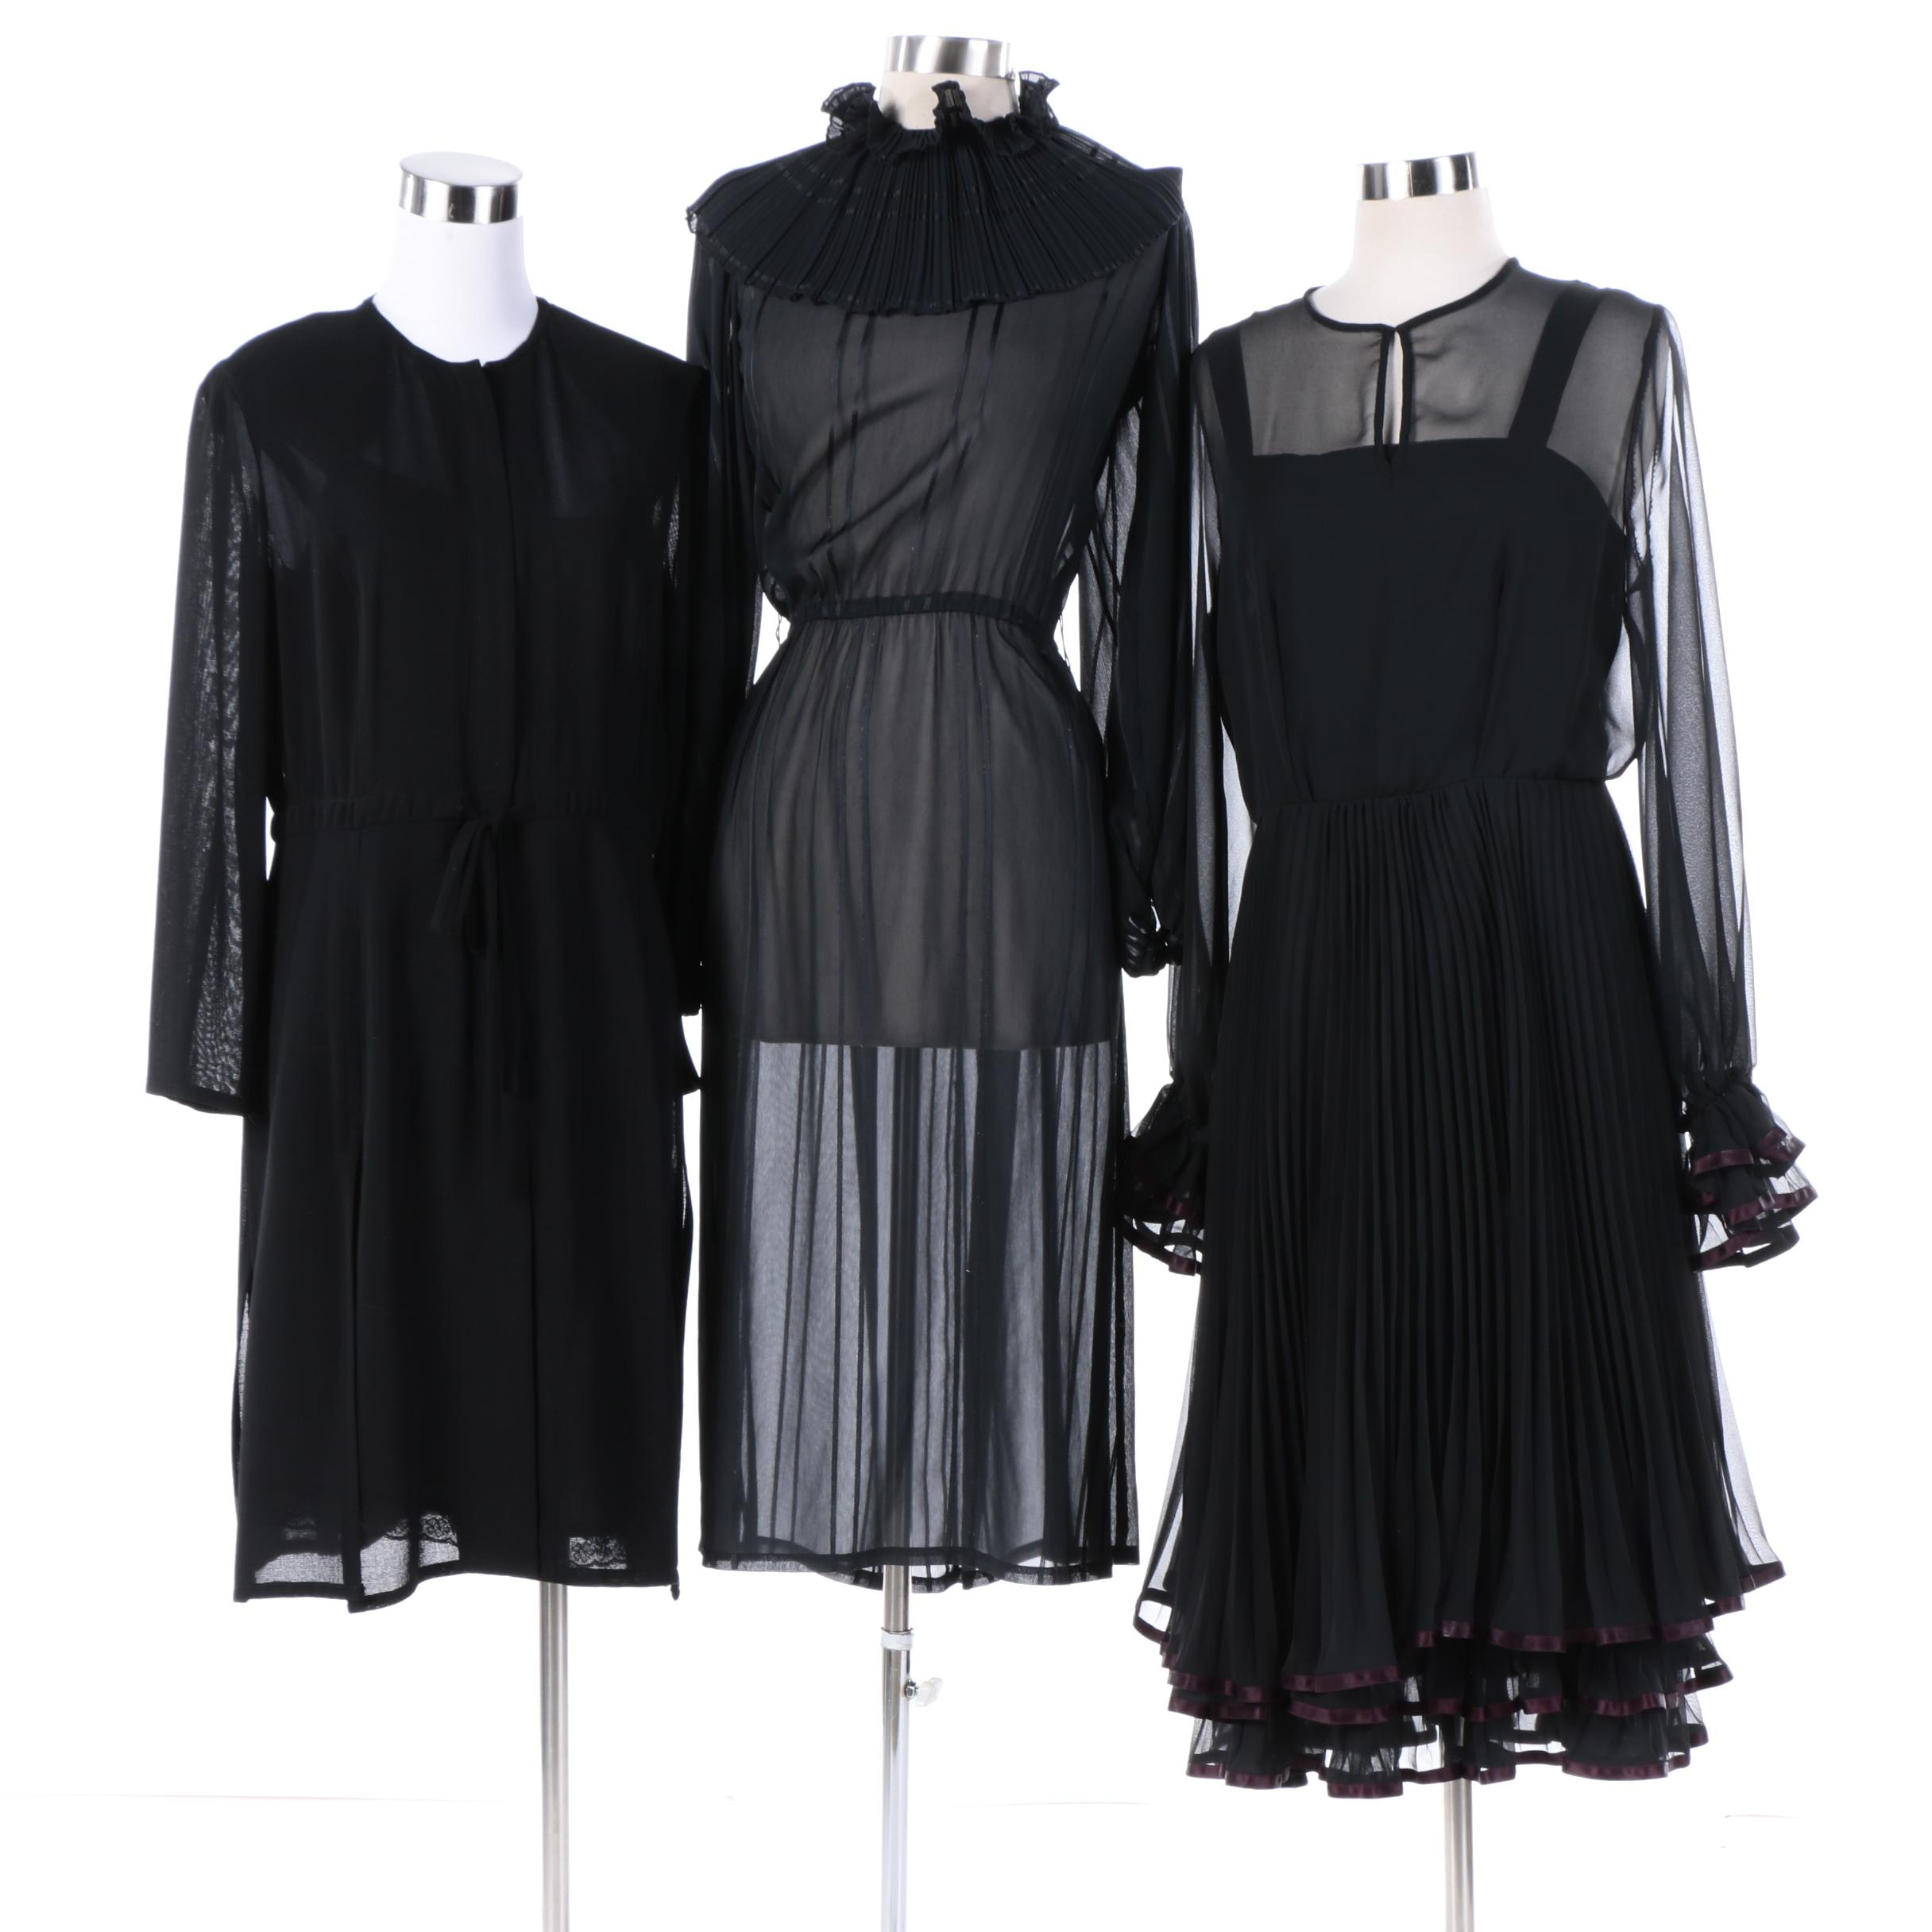 1980s Vintage Black Chiffon Evening Dresses Including Rena Lange